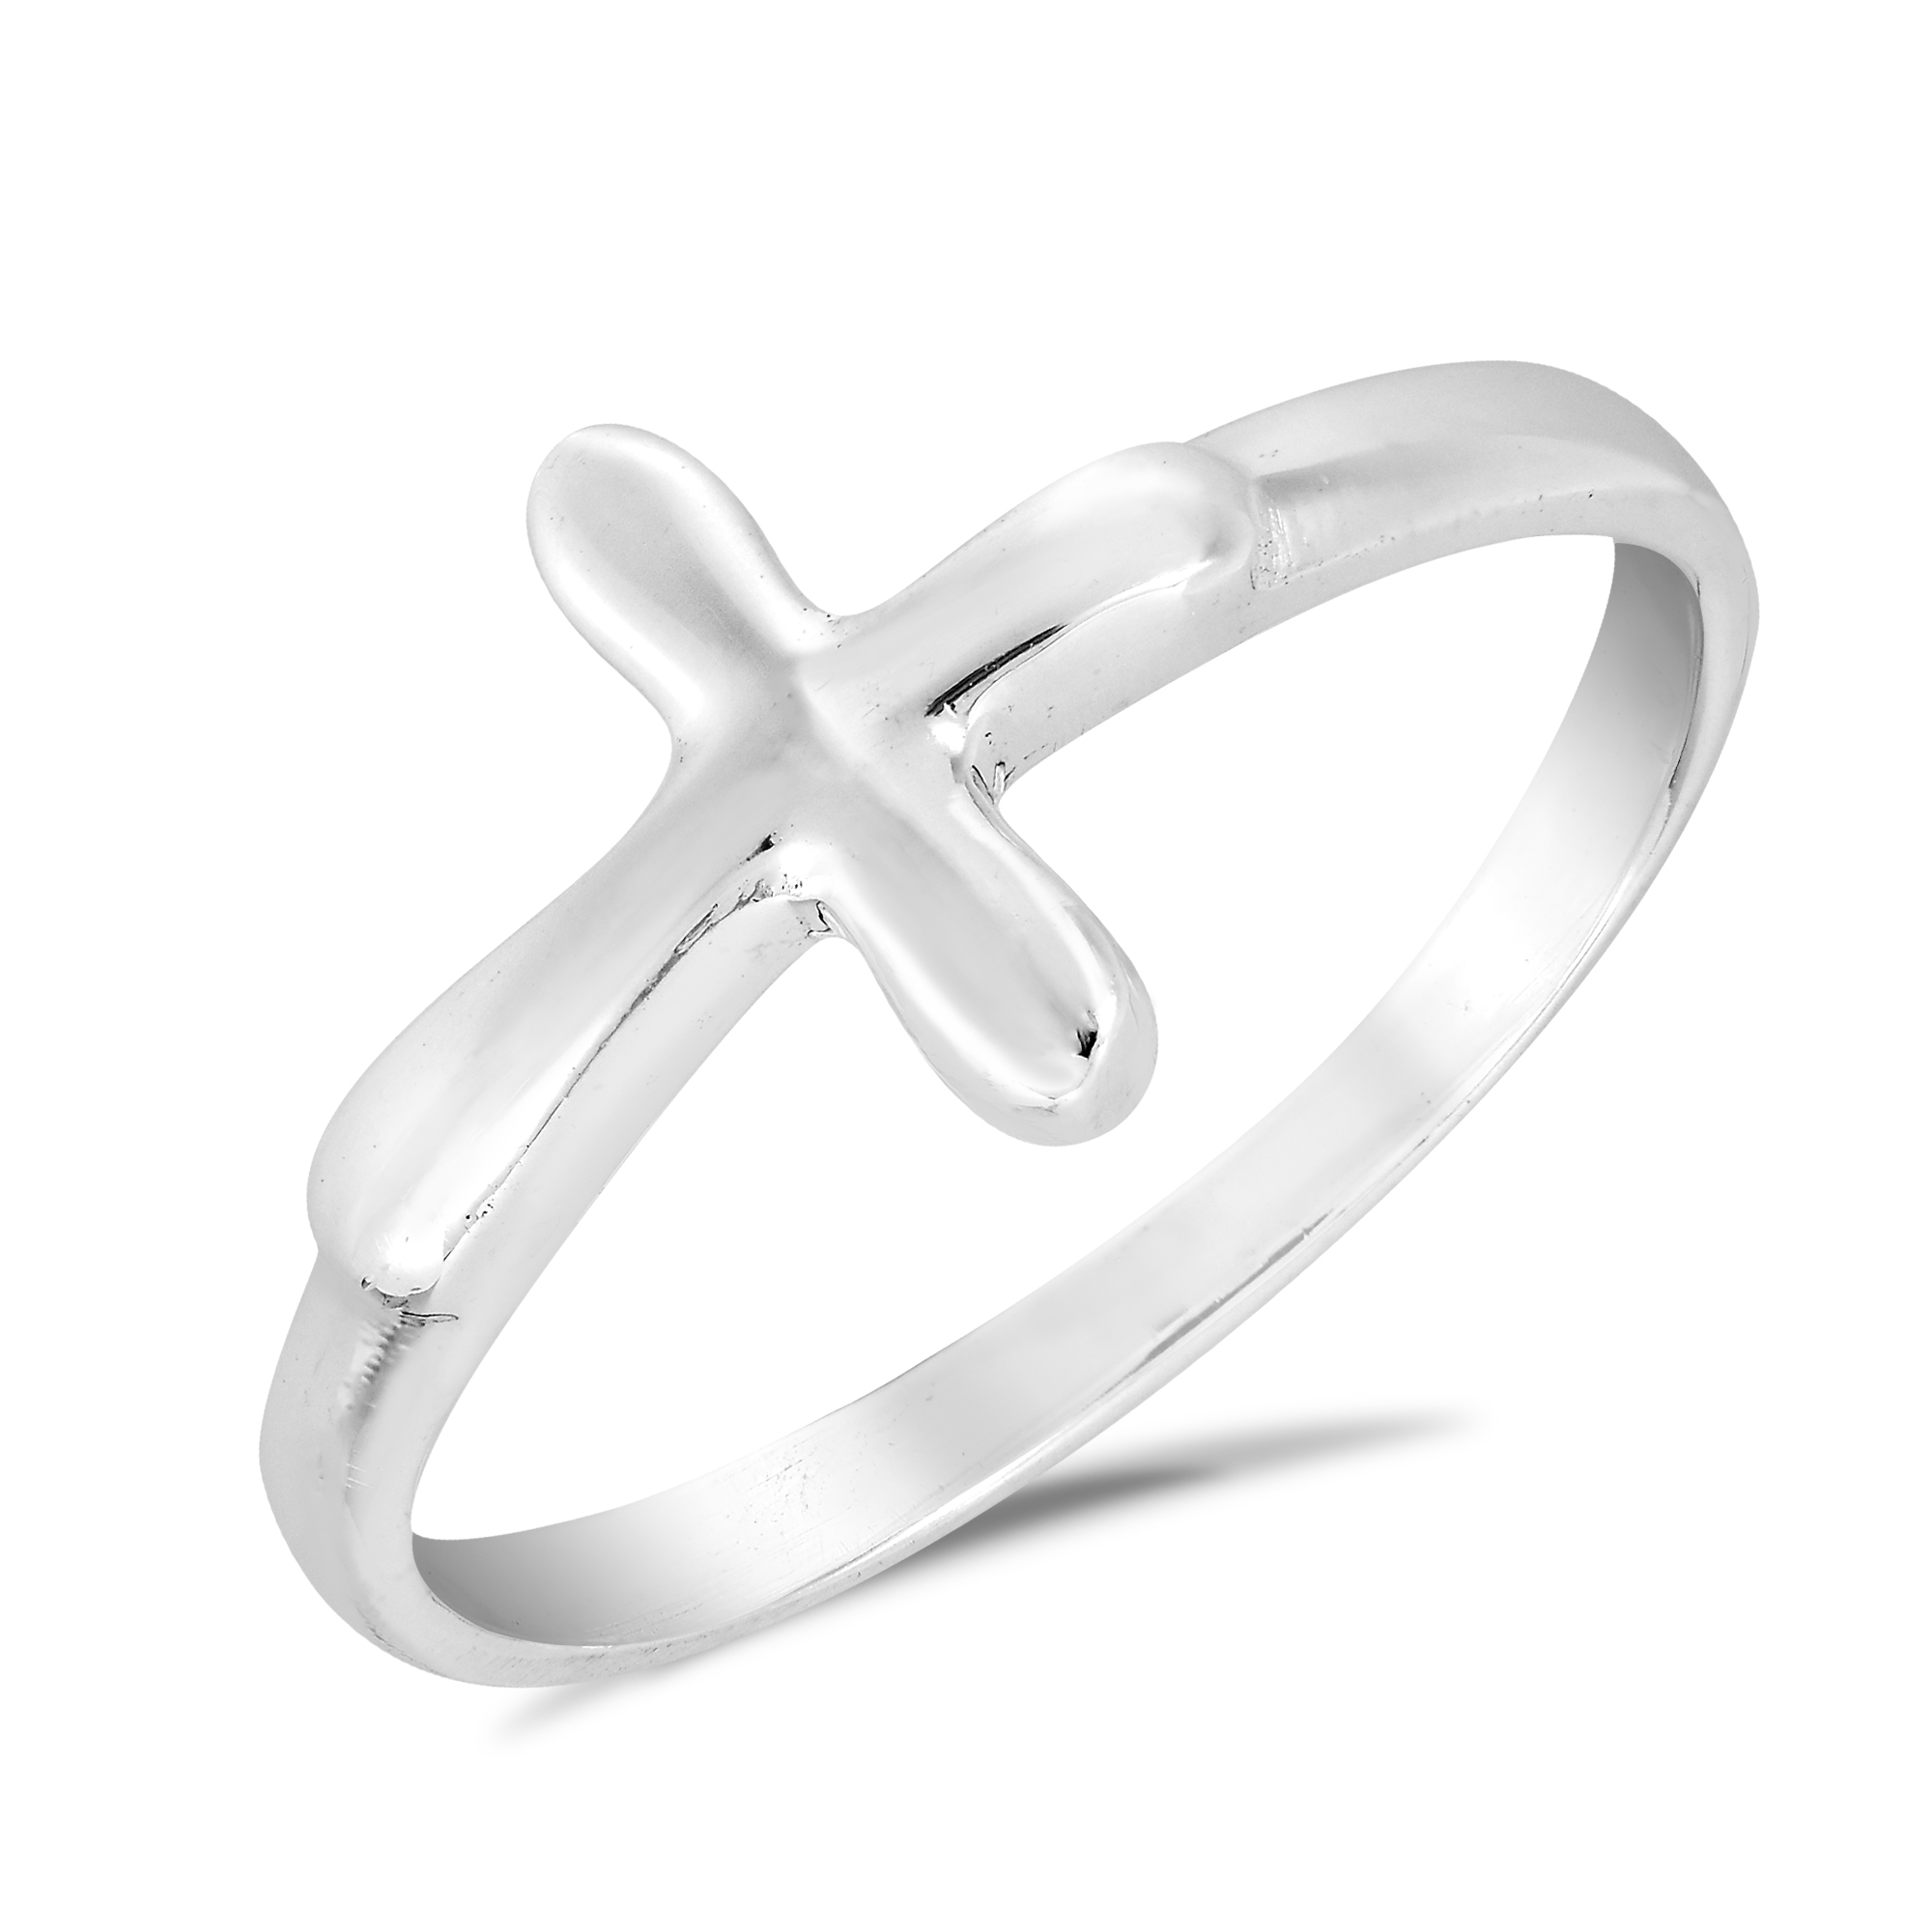 cross rings products open ring lane wedding christian jewelry holly